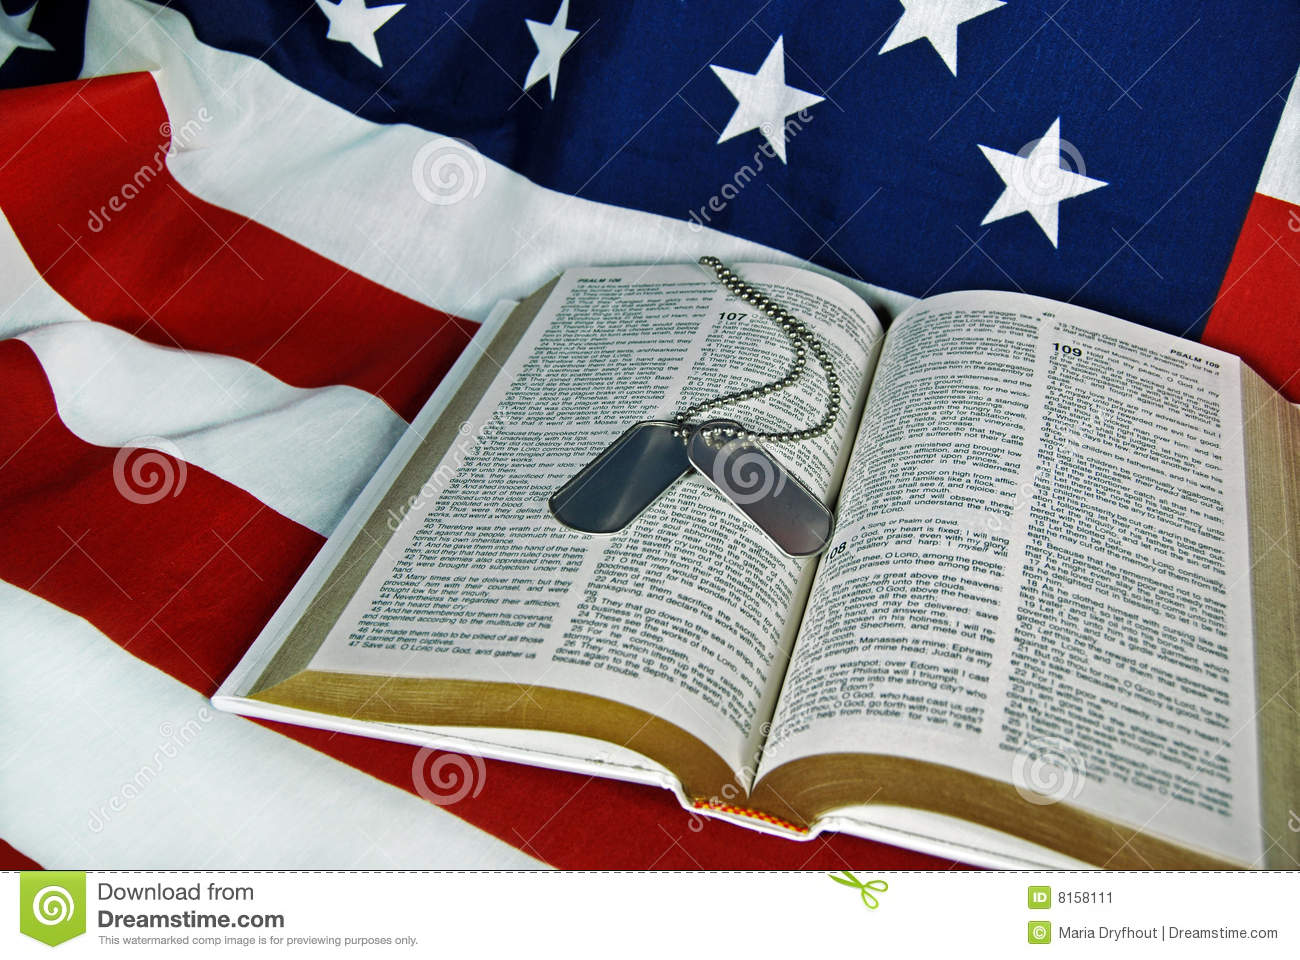 god and country stock image image 8158111